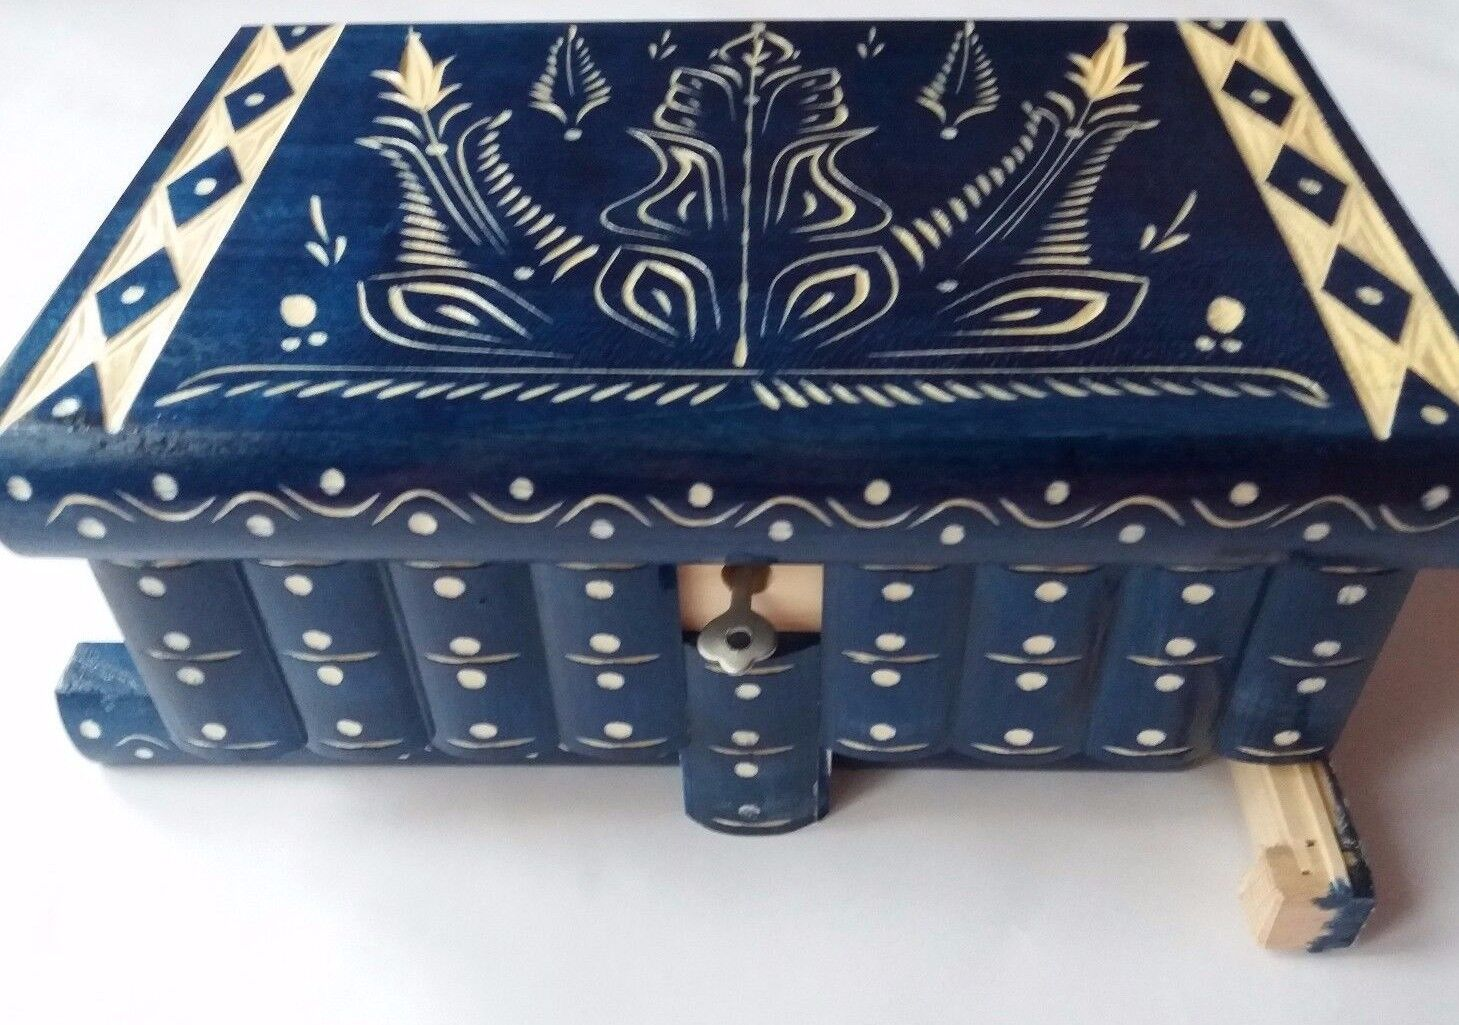 Huge puzzle jewelry magic box bluee new big wooden case treasure brain teaser